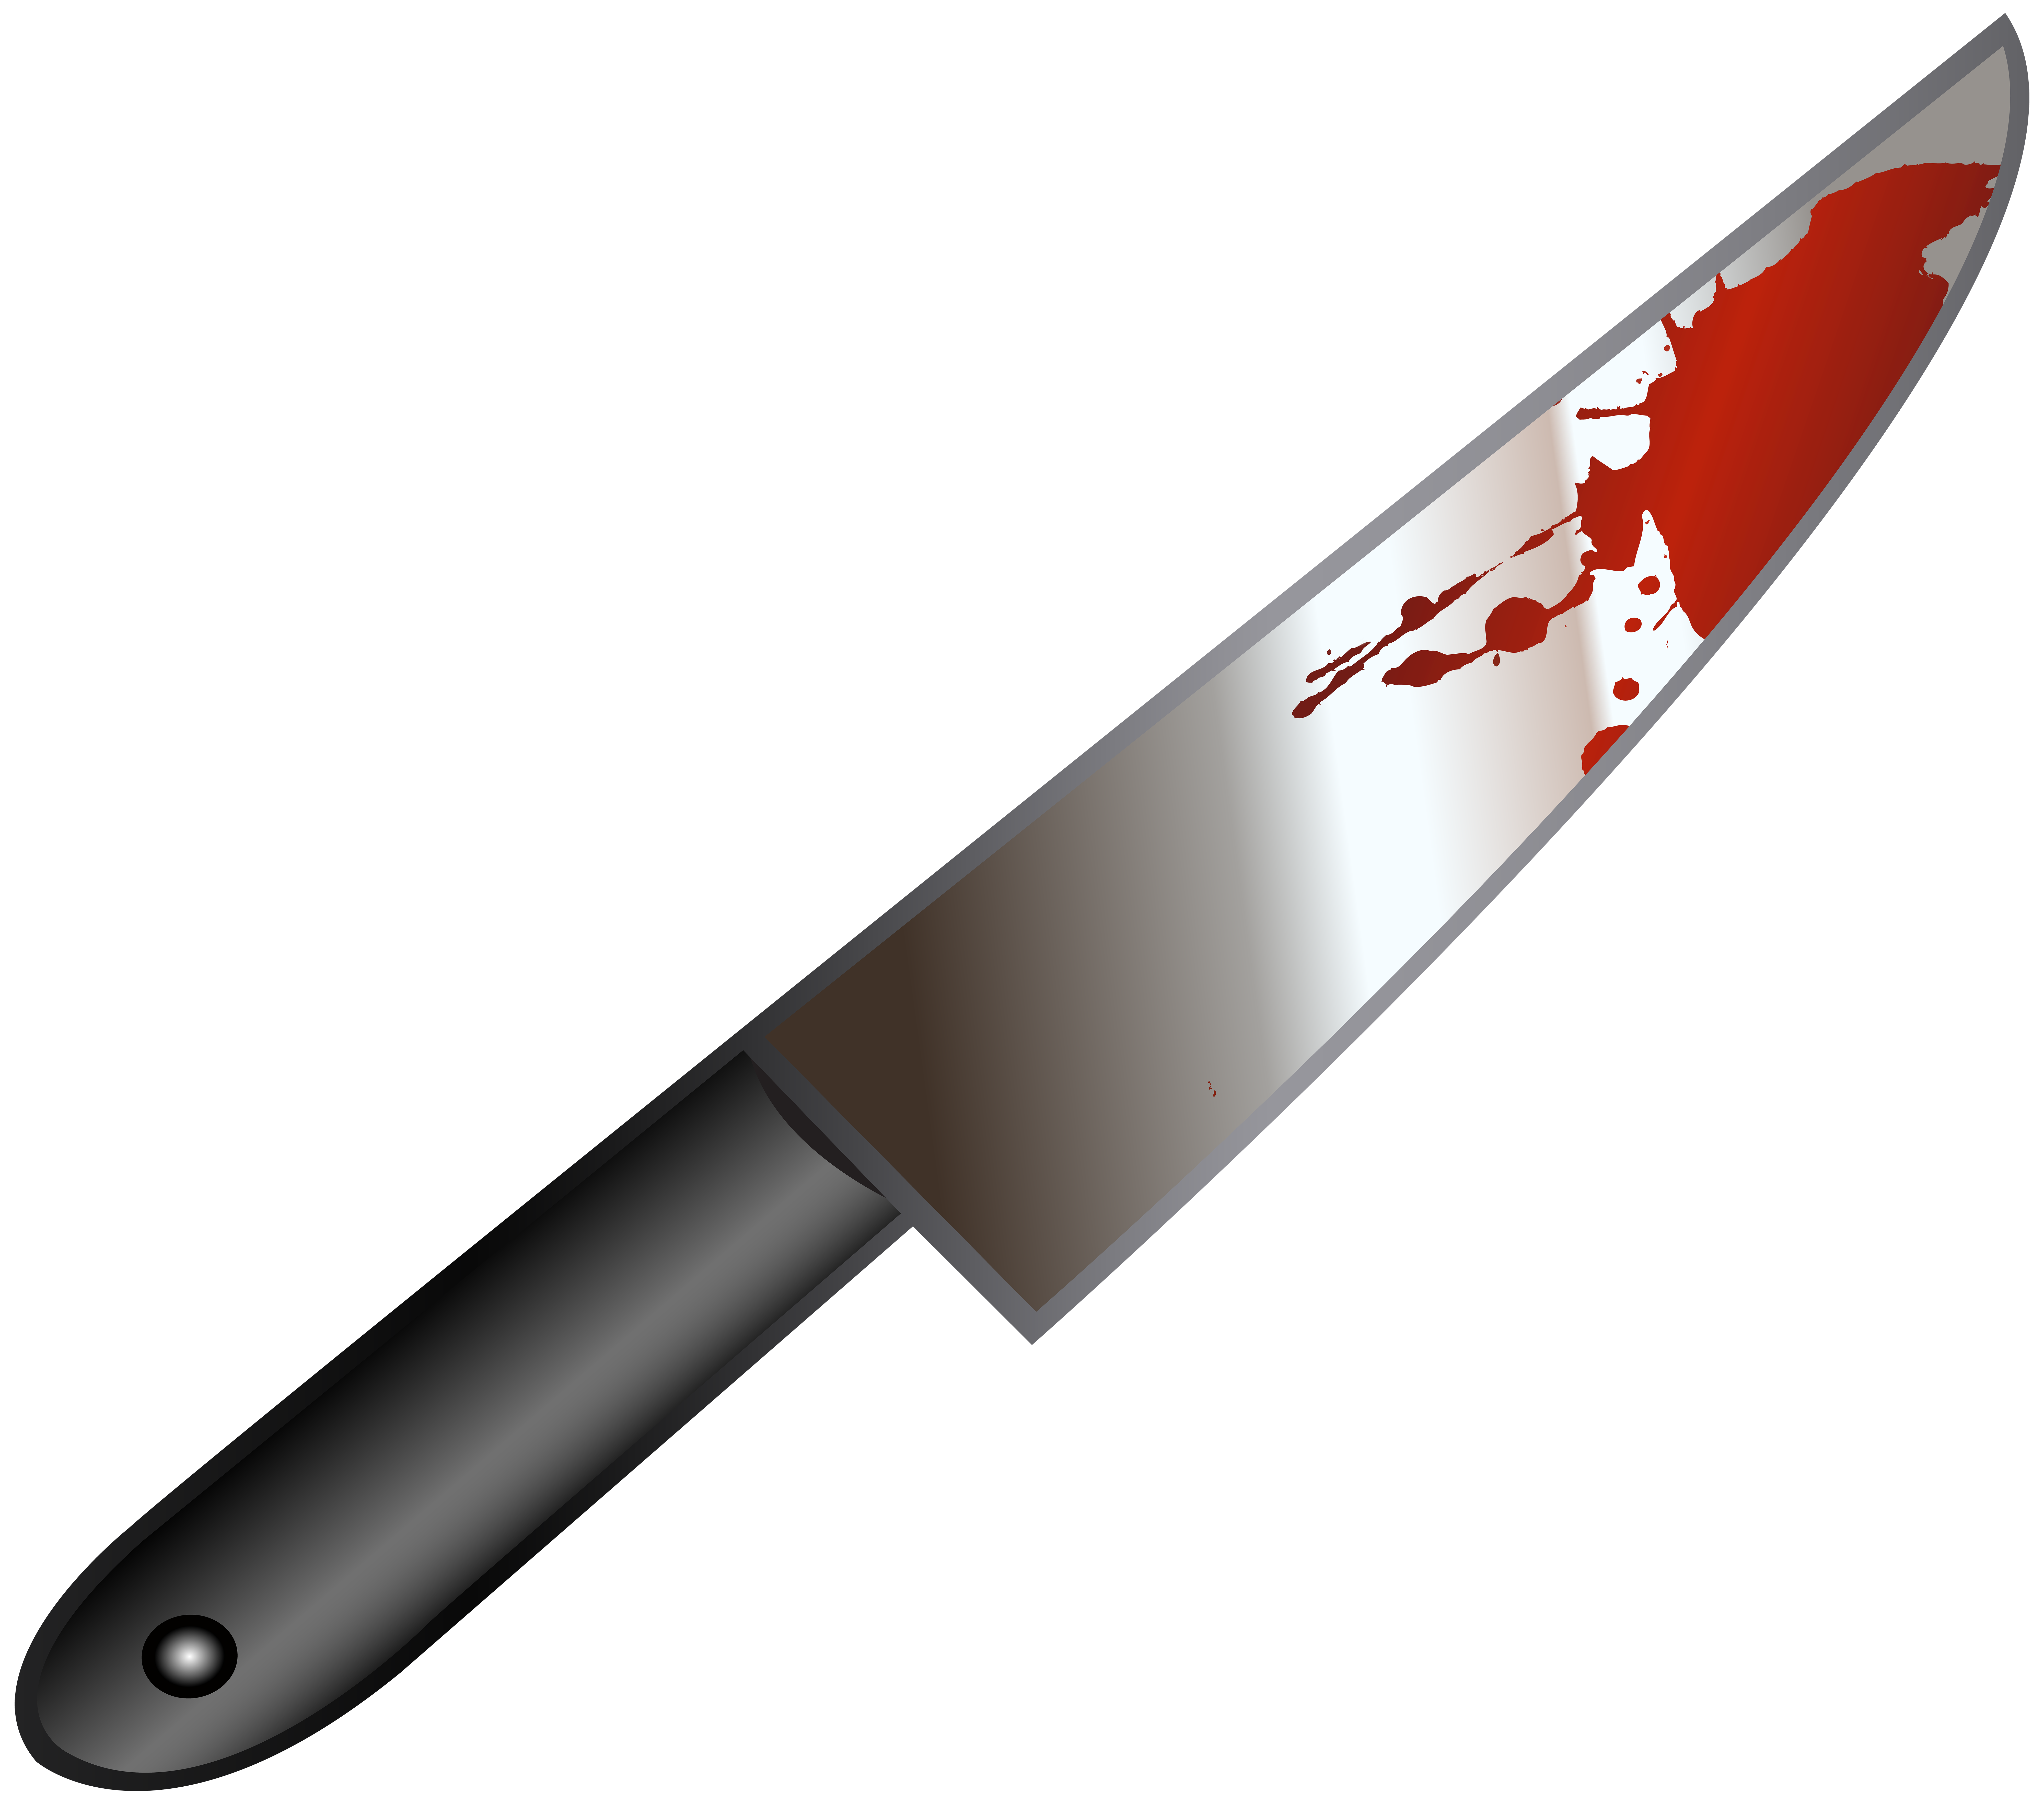 transparent stock Bloody knife clipart. Png clip art image